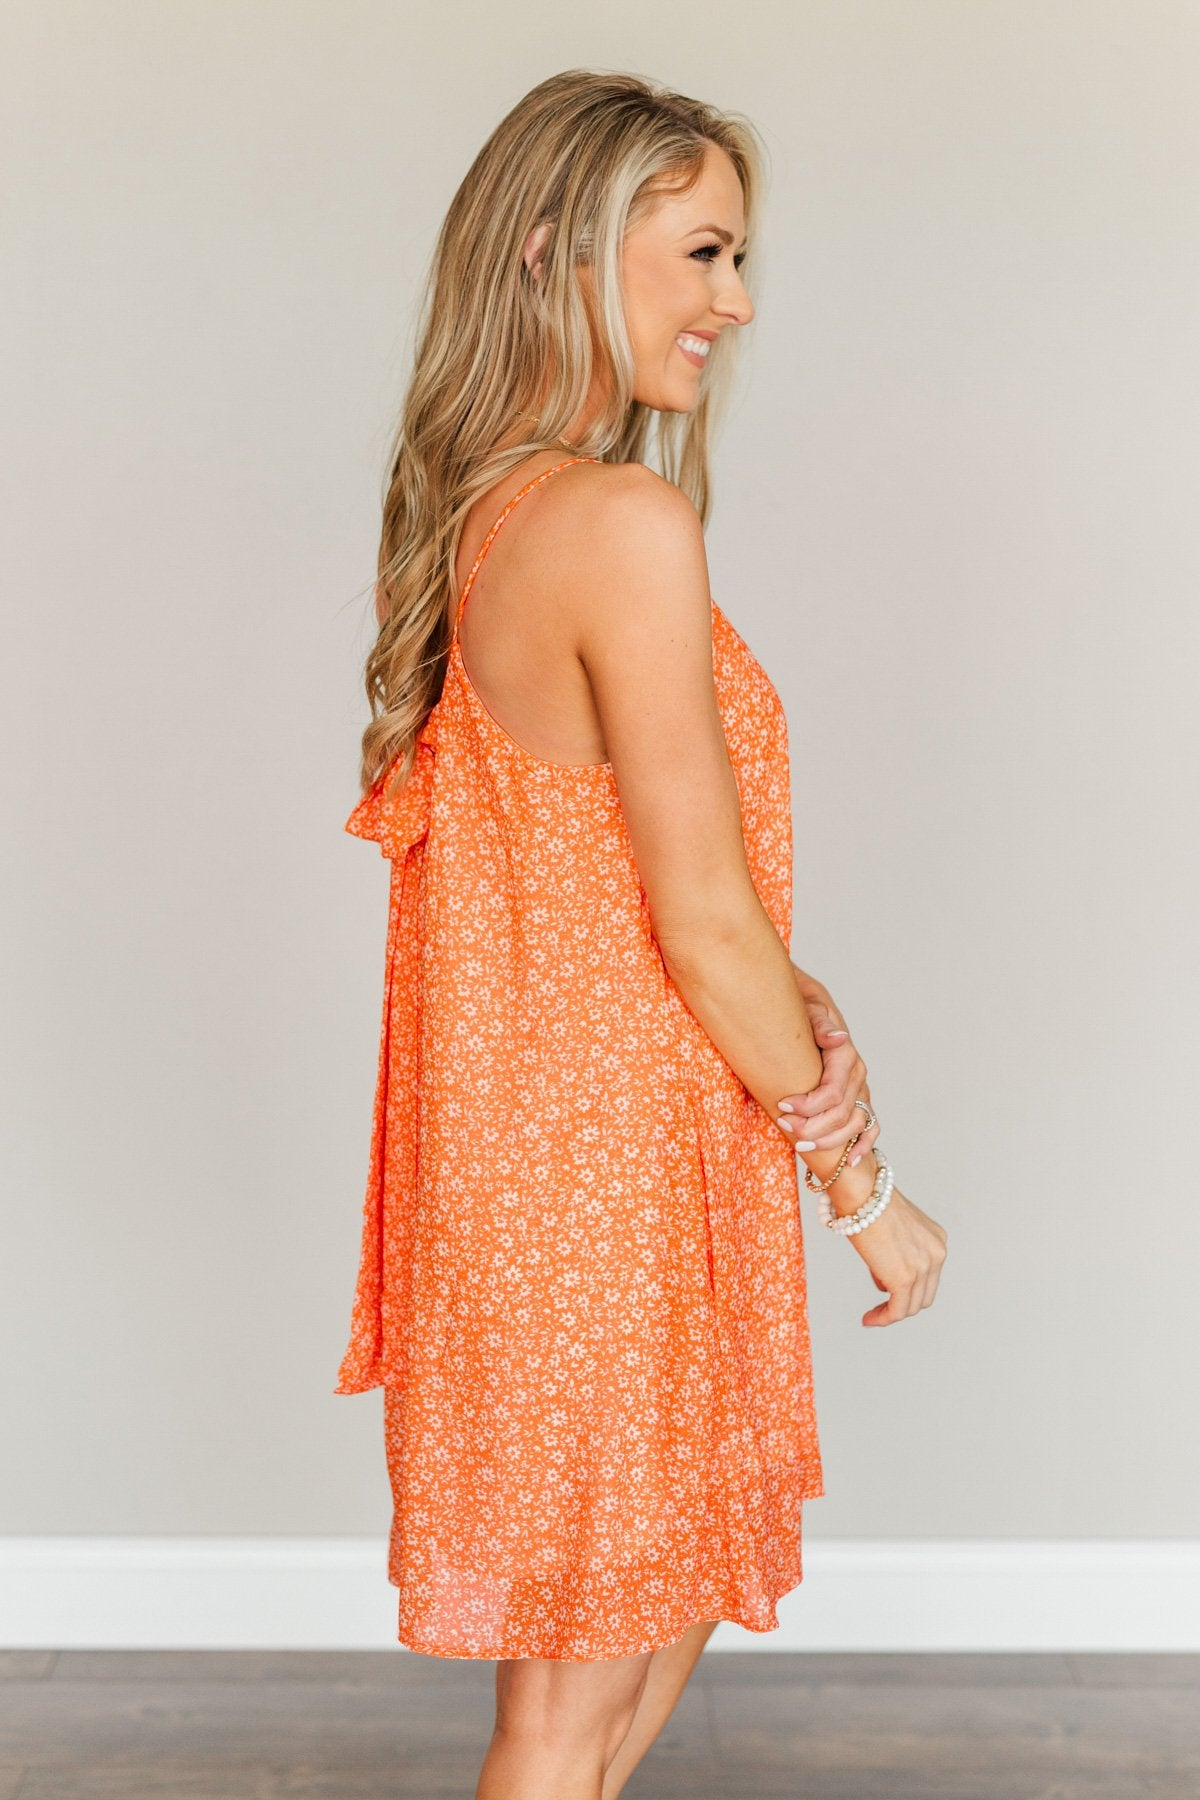 Delightful Moments Floral Dress- Vibrant Orange